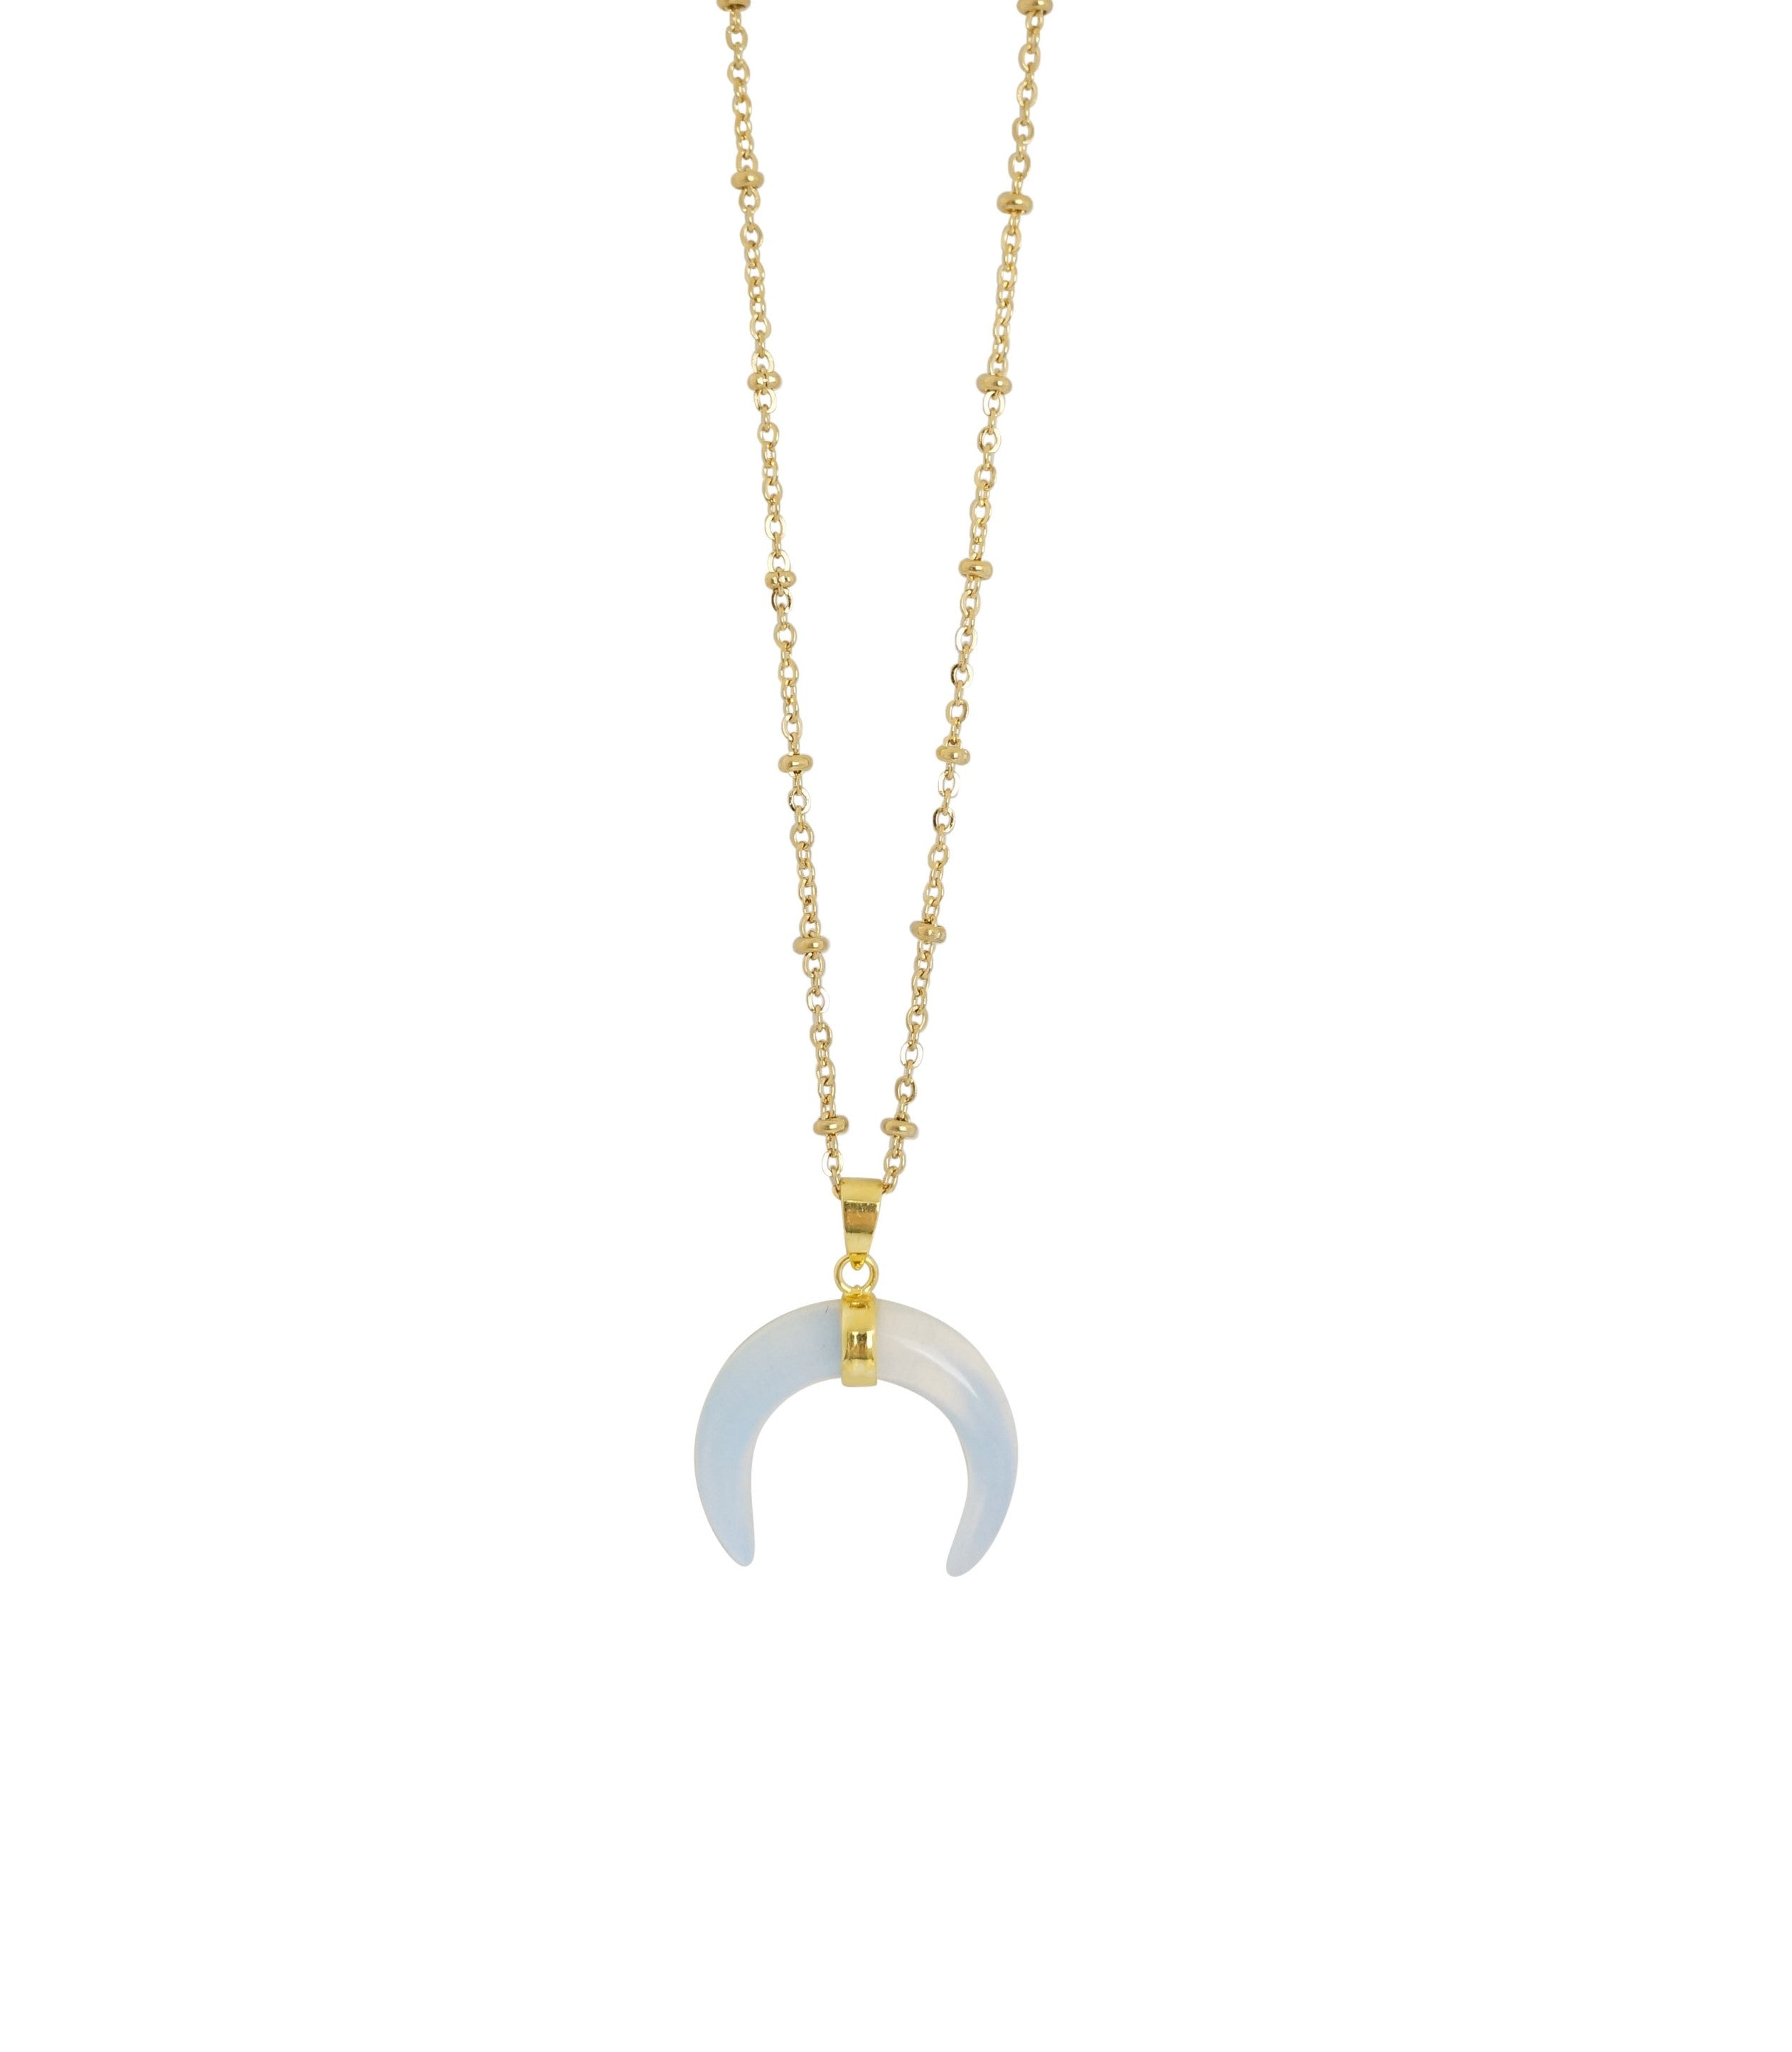 Freedom Necklace - Carolyn Hearn Designs